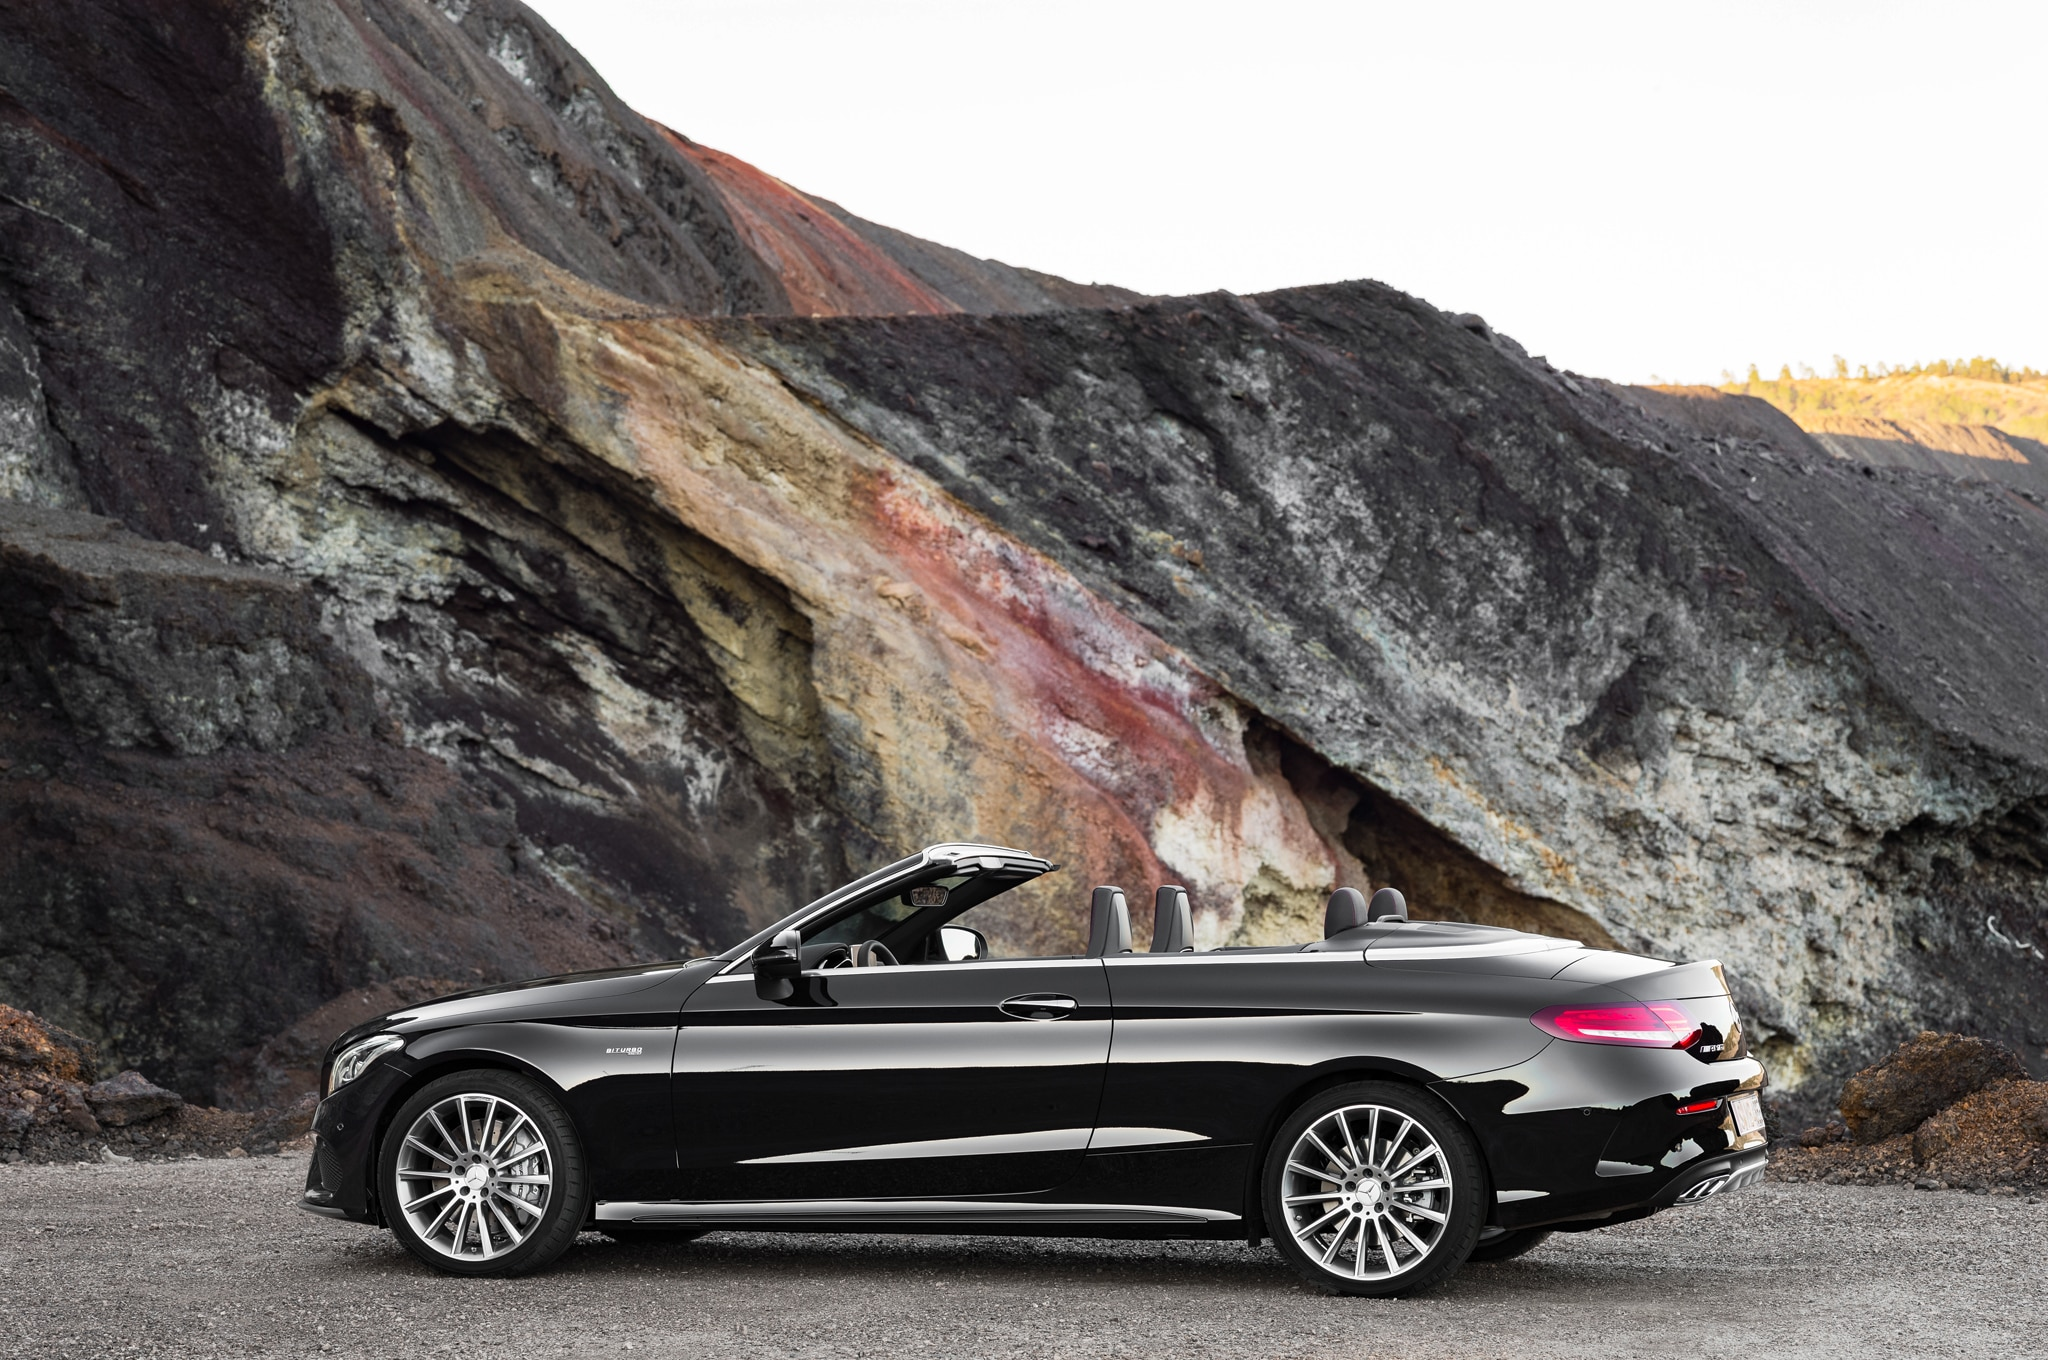 2017 mercedes benz c class cabriolet revealed in c300 amg c43 guises automobile magazine. Black Bedroom Furniture Sets. Home Design Ideas